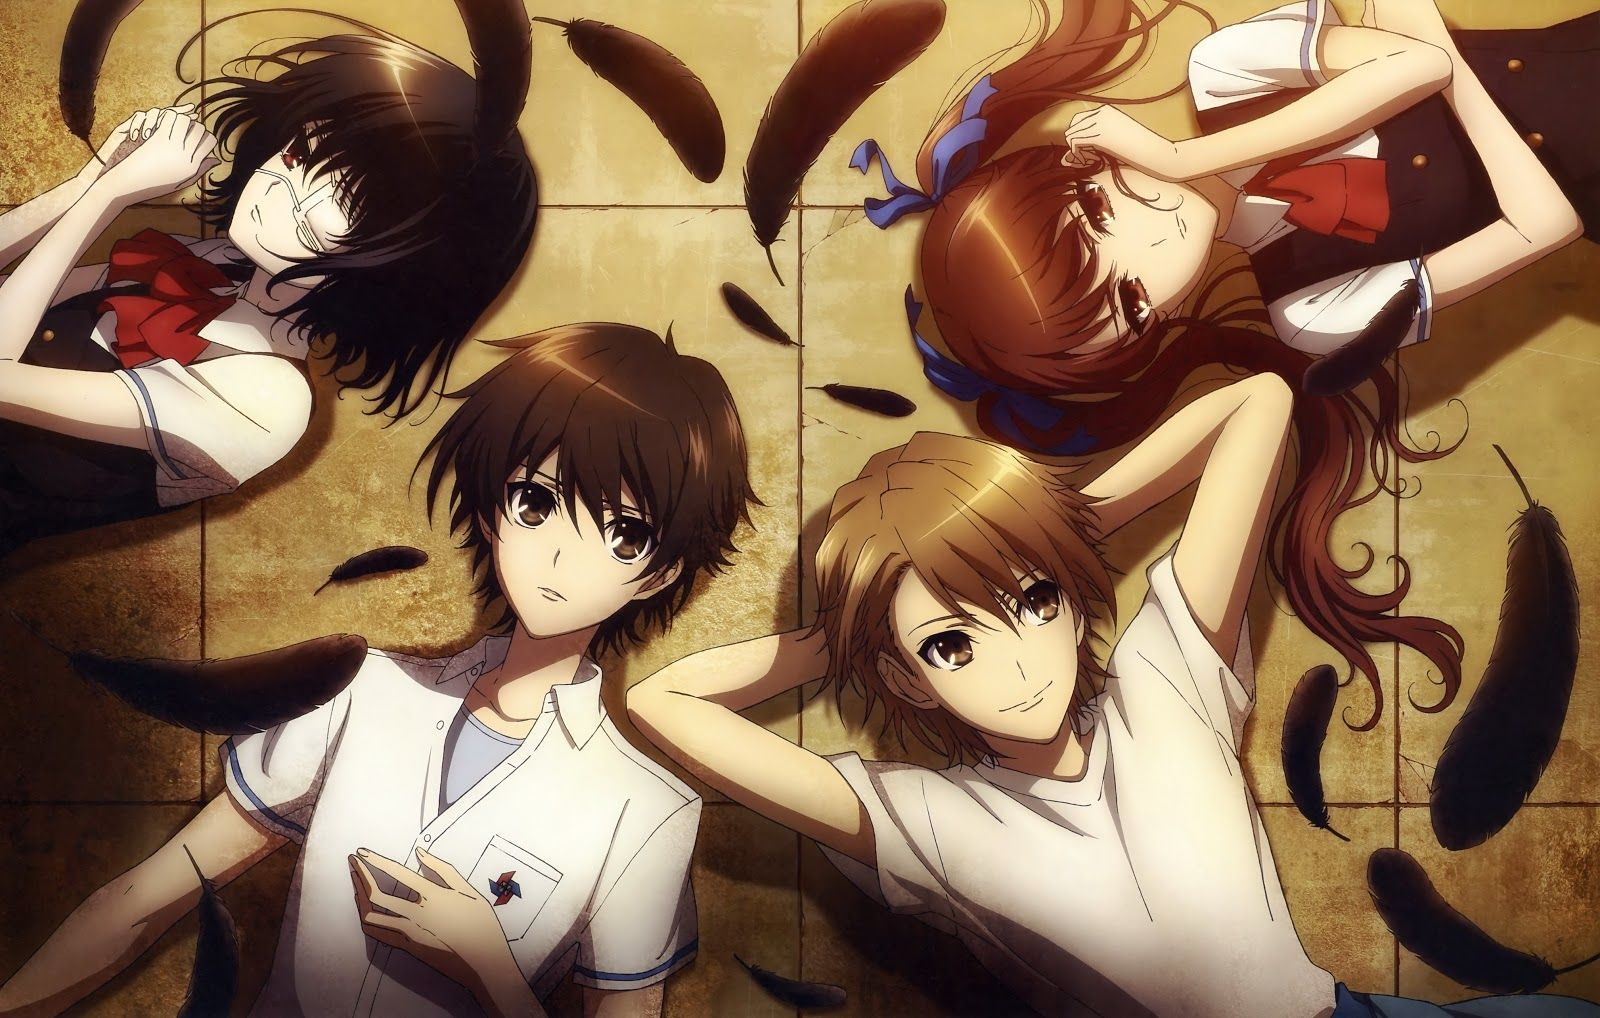 [Anime Review]: Another